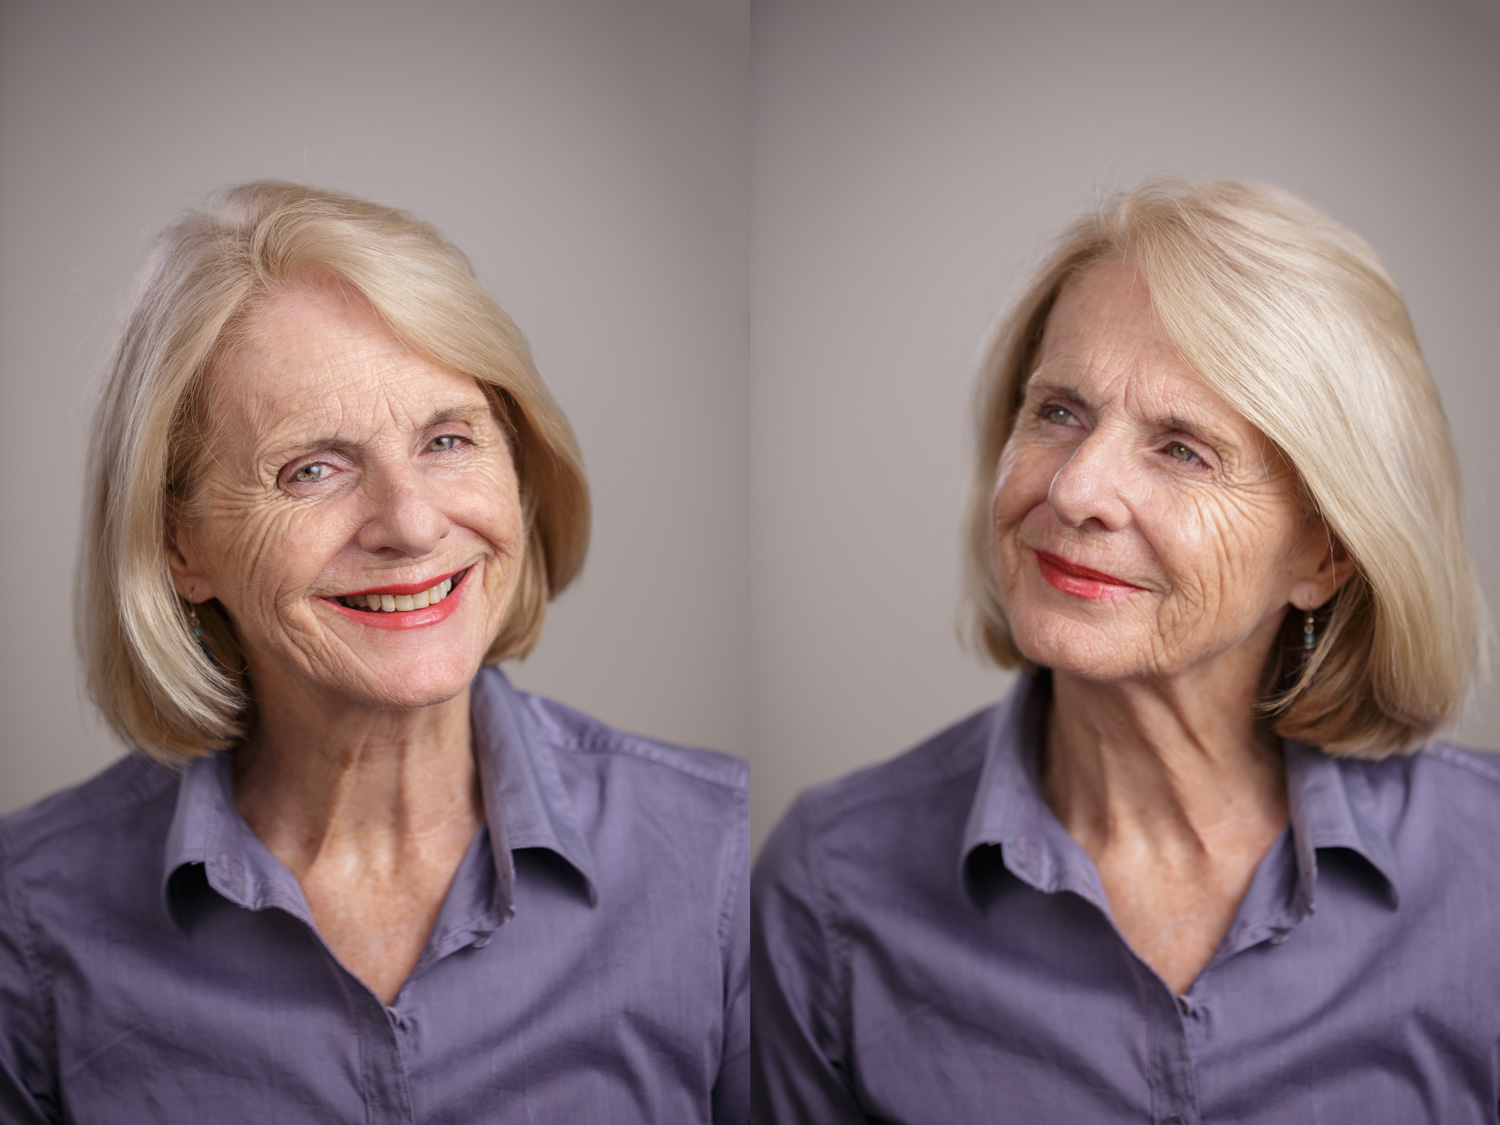 Image: Short lighting (left) generally provides a more flattering photo for an elderly subject than...